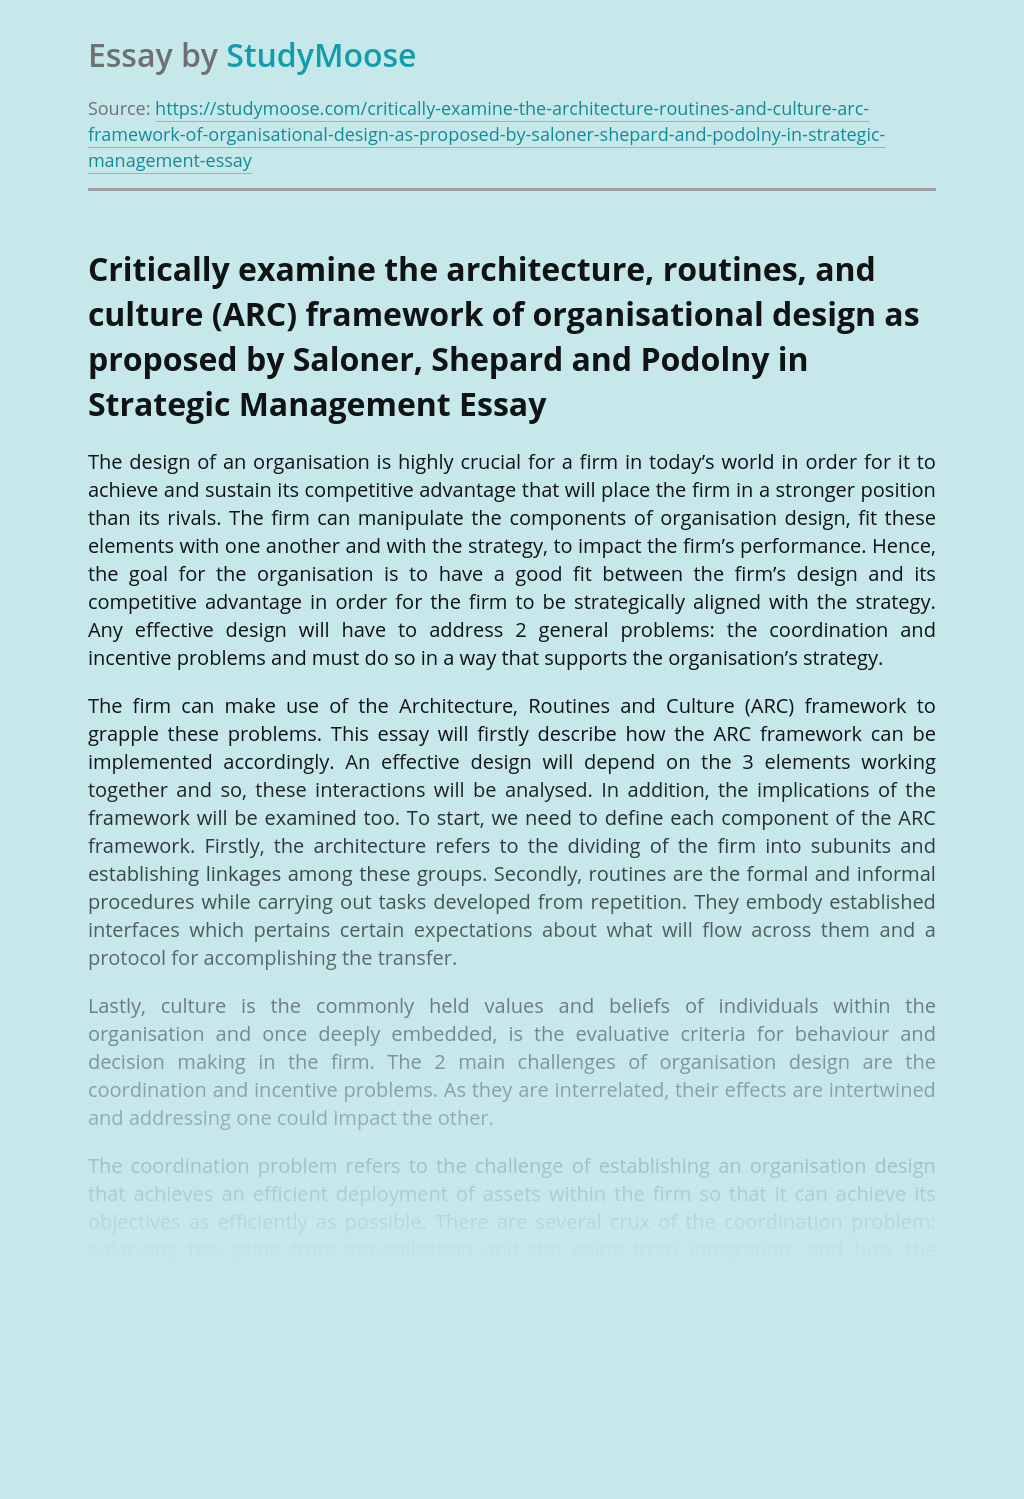 Critically examine the architecture, routines, and culture (ARC) framework of organisational design as proposed by Saloner, Shepard and Podolny in Strategic Management